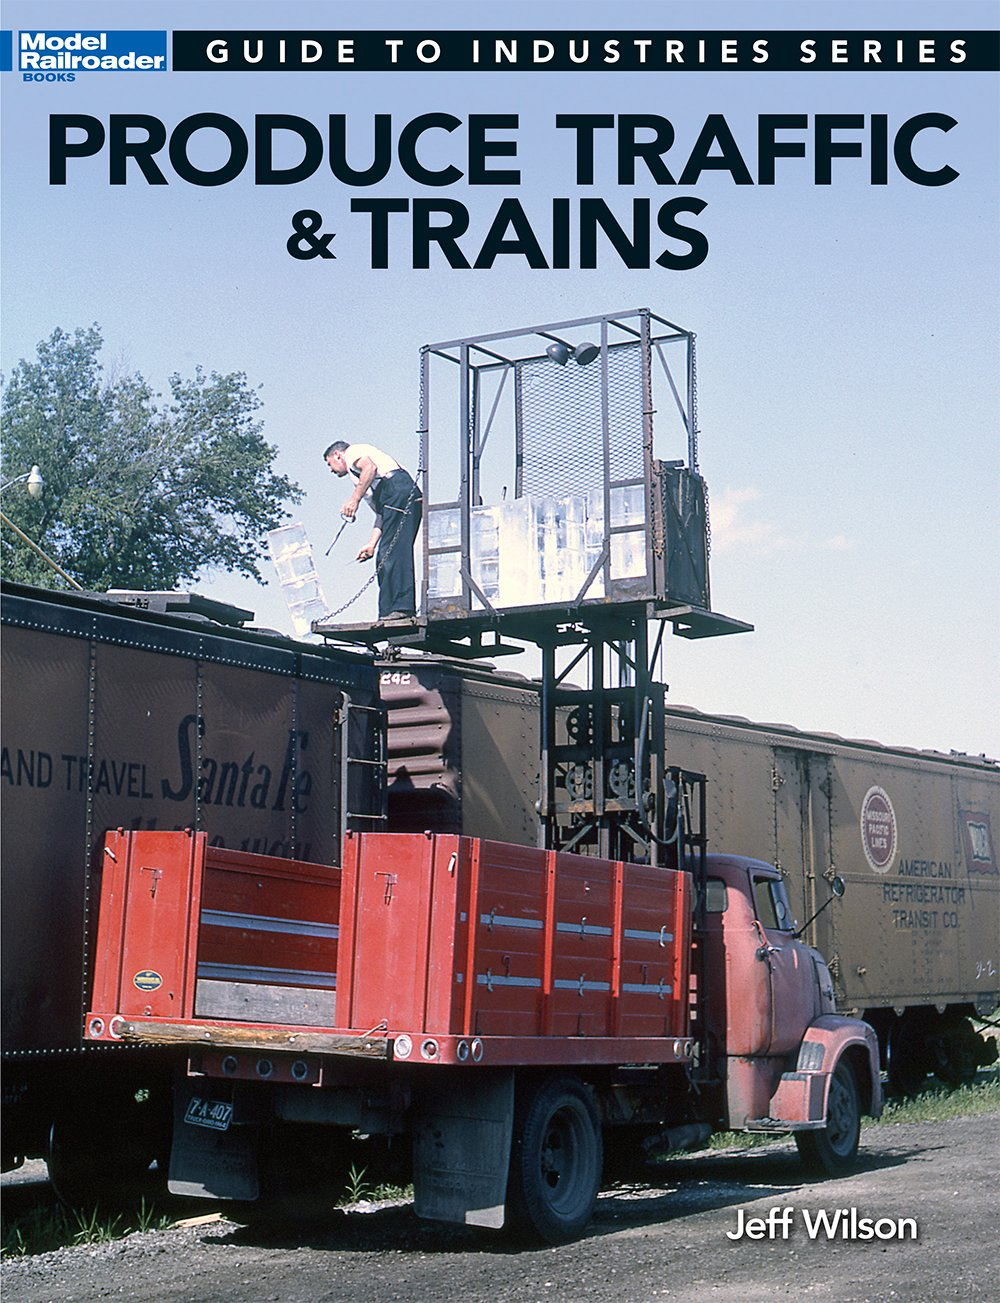 Produce Traffic & Trains MRR's Guide to Industries #12500 Book Wilson Lots Pix